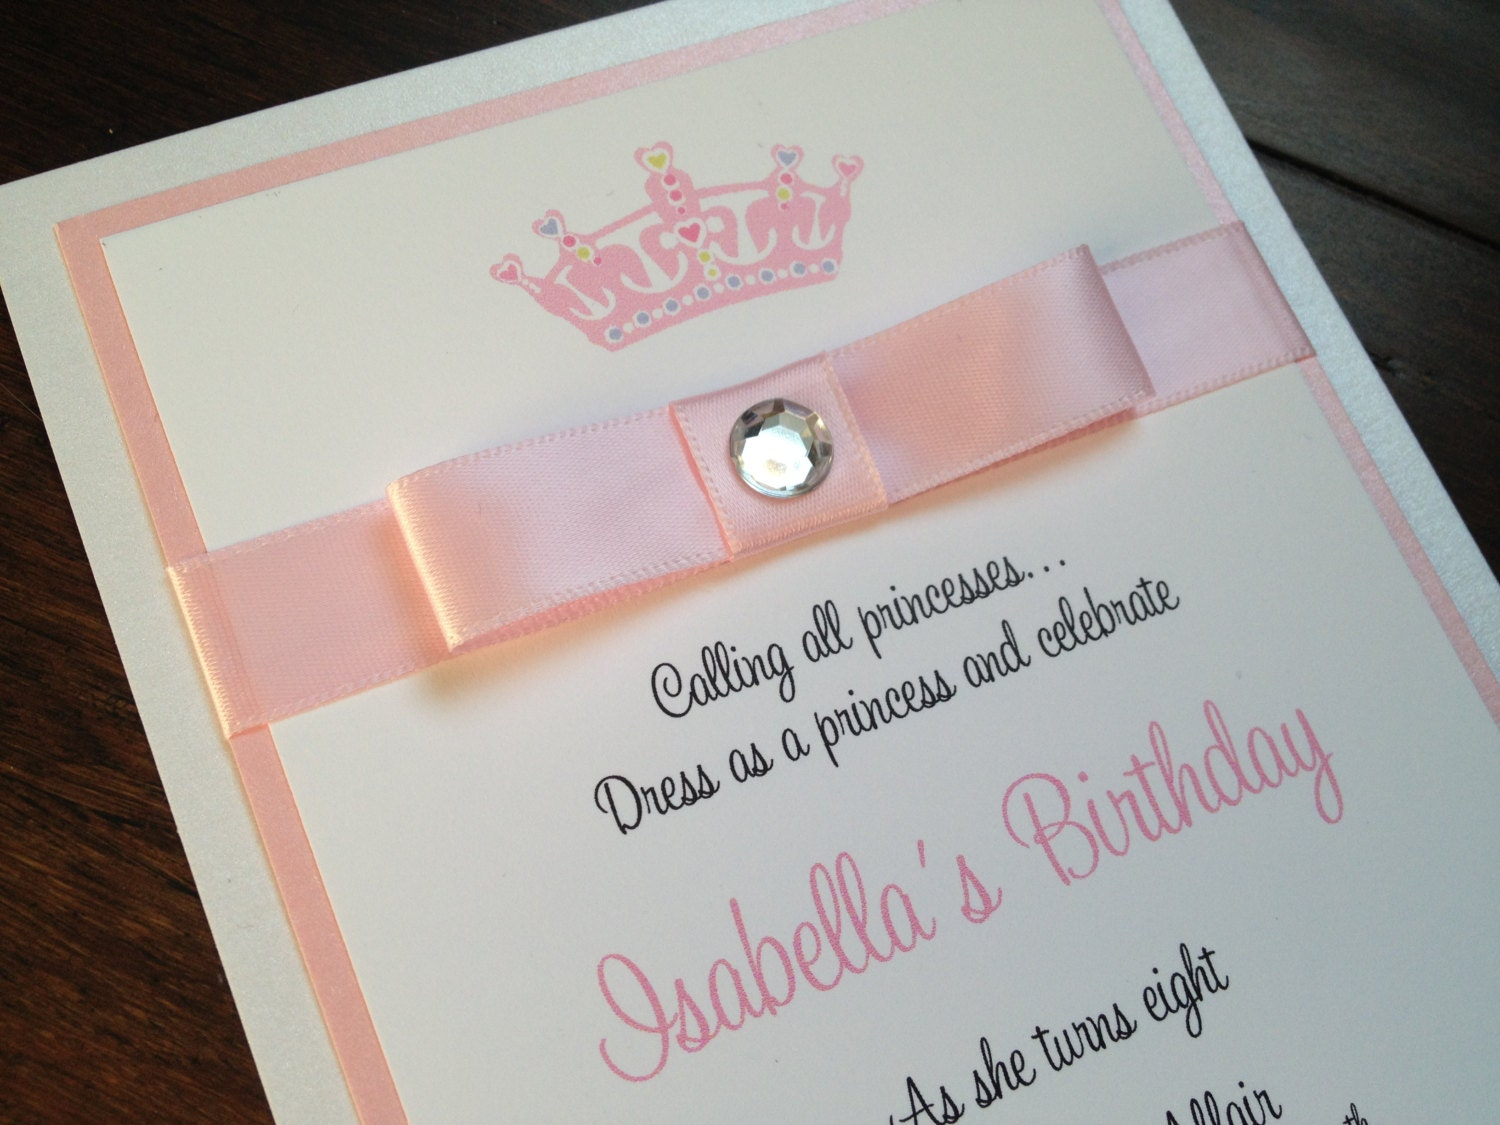 Crown Invitation, Princess Party, Birthday Party, Pink and White, Bow, Jewel Embellishment - Crown